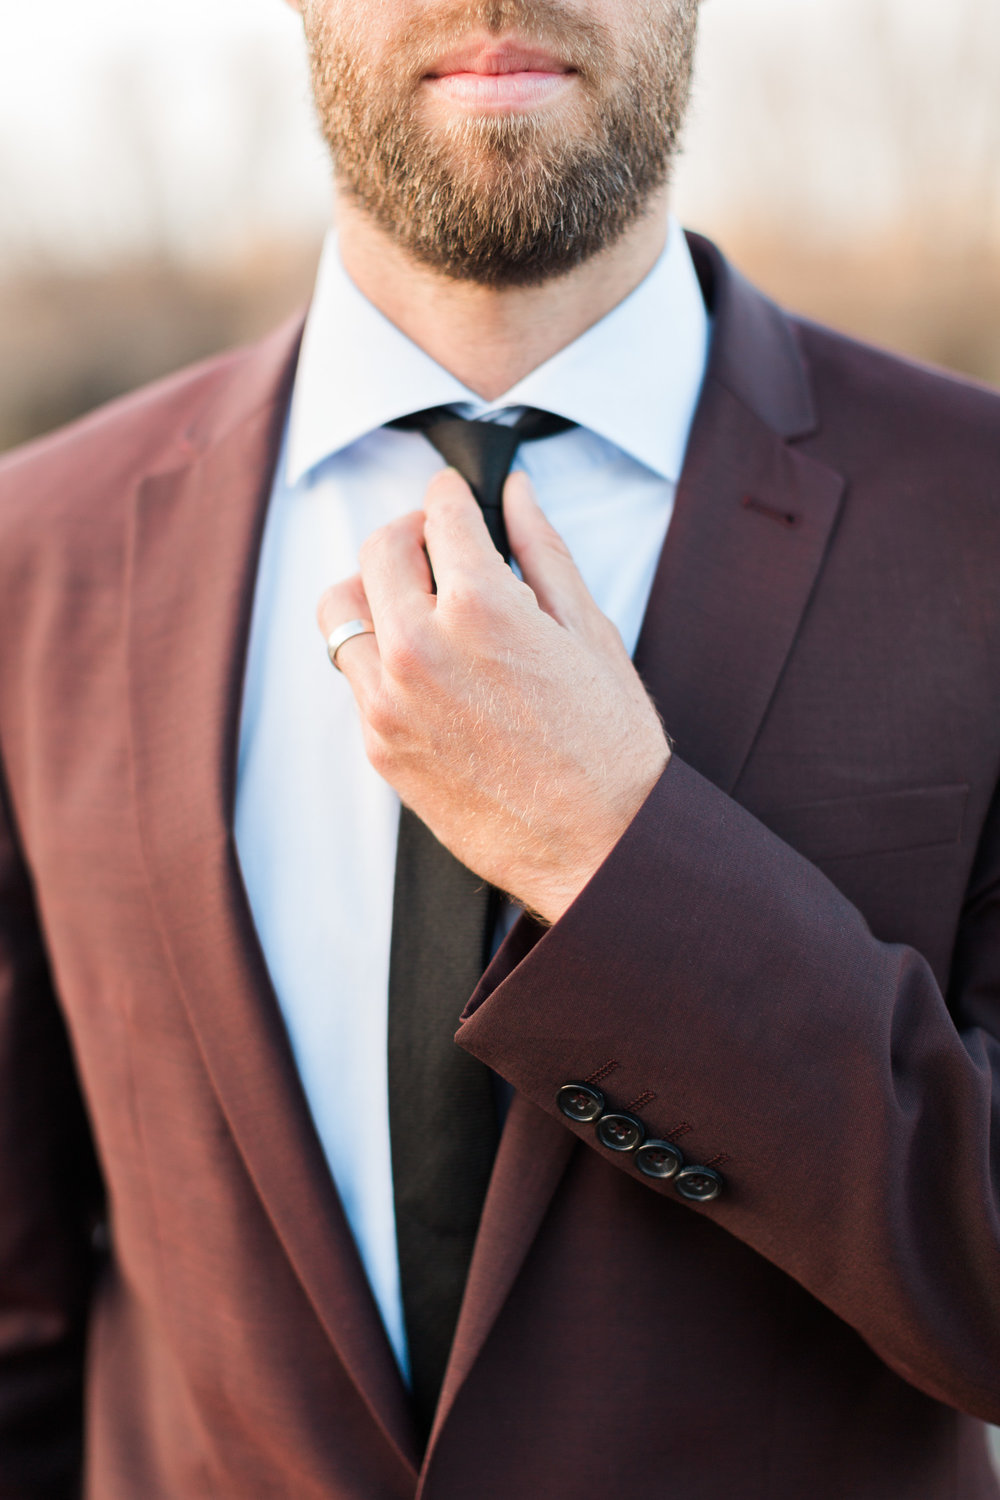 Straightening his tie, wearing a classy burgundy jacket.